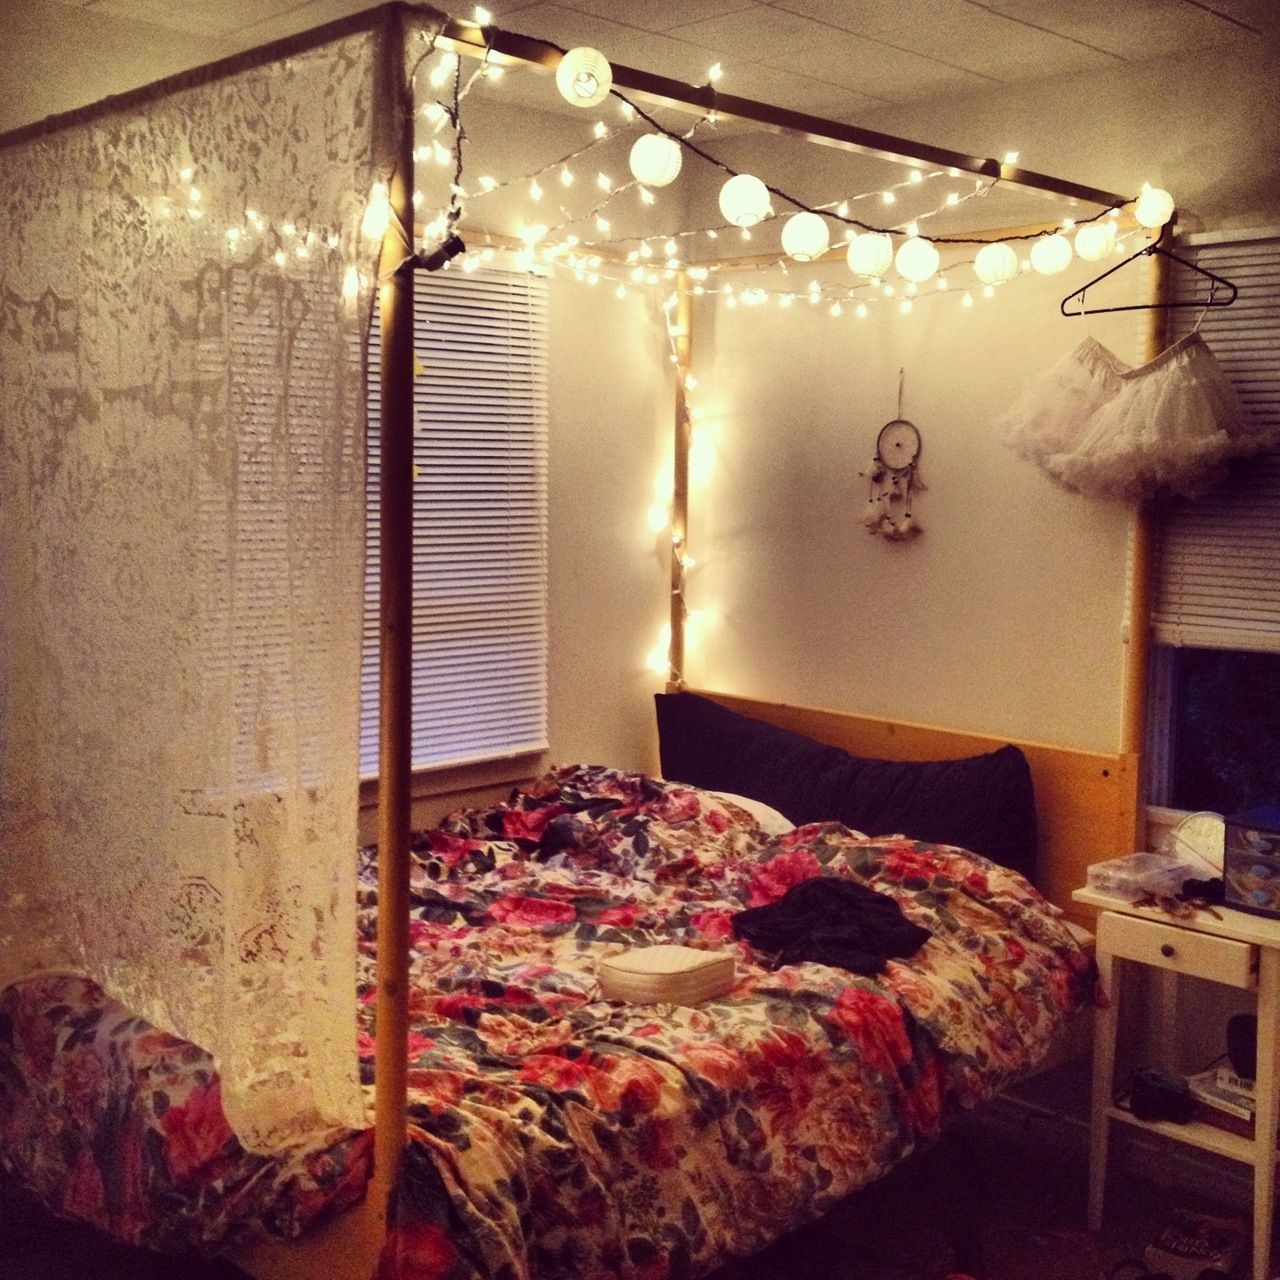 Want a cheap canopy bed find a simple brown or black frame and some pvc